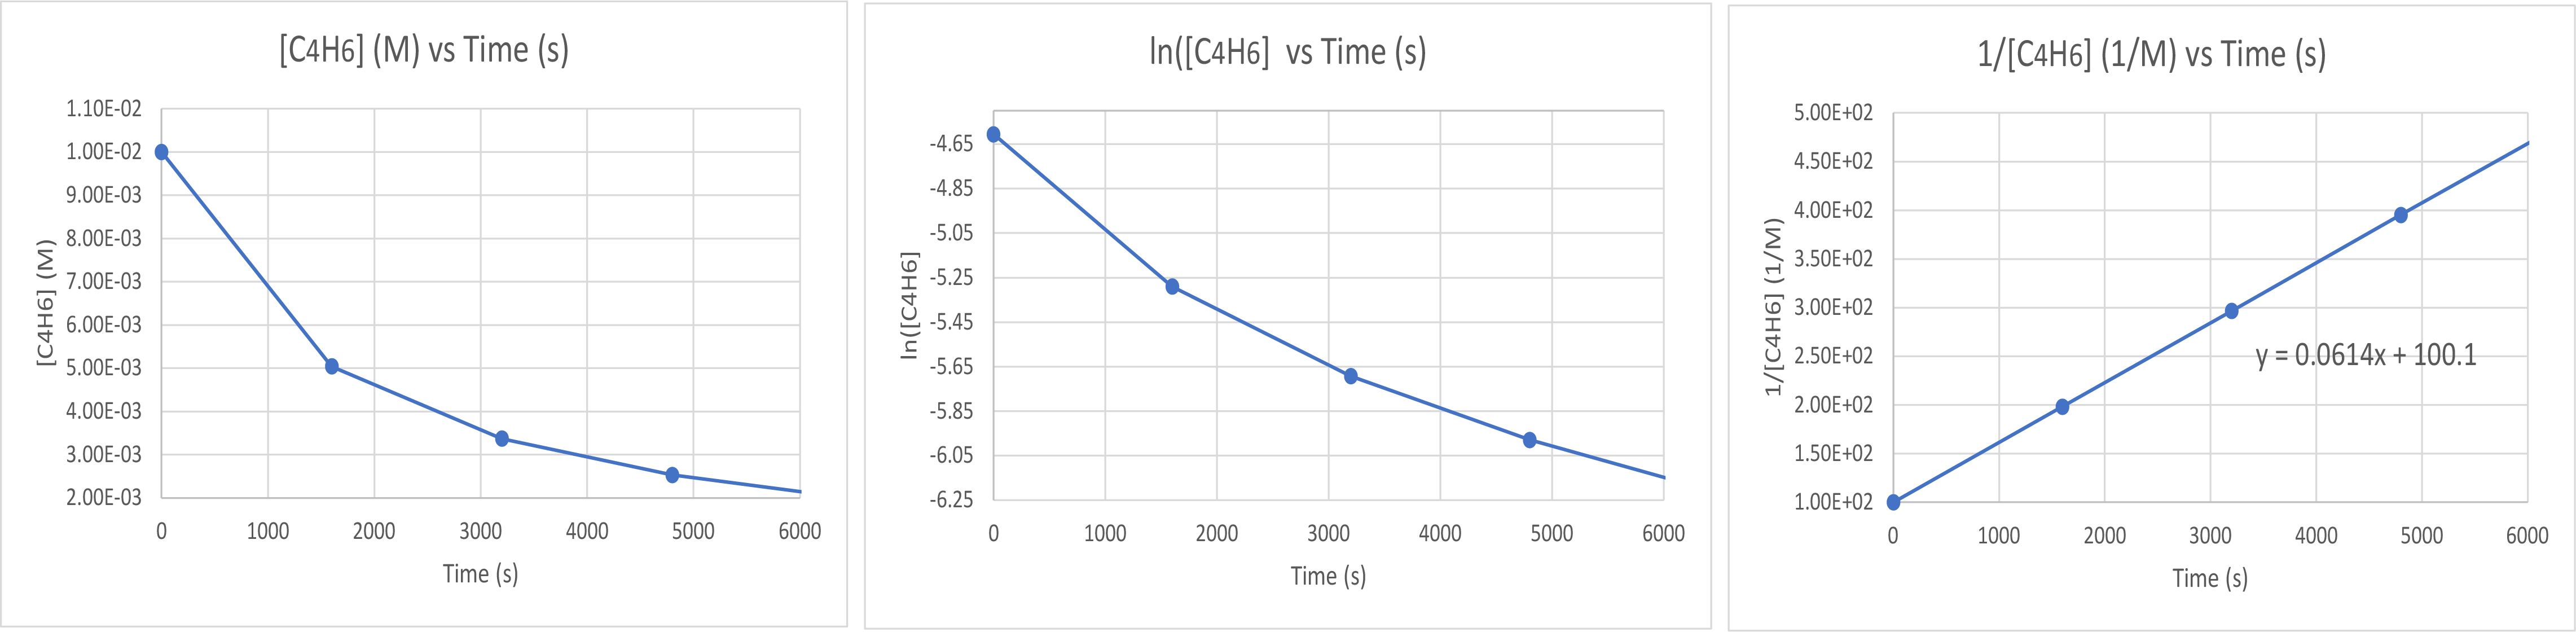 """Two graphs are shown, each with the label """"Time ( s )"""" on the x-axis. The graph on the left is labeled, """"l n [ C subscript 4 H subscript 6 ],"""" on the y-axis. The graph on the right is labeled """"1 divided by [ C subscript 4 H subscript 6 ],"""" on the y-axis. The x-axes for both graphs show markings at 3000 and 6000. The y-axis for the graph on the left shows markings at negative 6, negative 5, and negative 4. A decreasing slightly concave up curve is drawn through five points at coordinates that are (0, negative 4.605), (1600, negative 5.289), (3200, negative 5.692), (4800, negative 5.978), and (6200, negative 6.175). The y-axis for the graph on the right shows markings at 100, 300, and 500. An approximately linear increasing curve is drawn through five points at coordinates that are (0, 100), (1600, 198), (3200, 296), and (4800, 395), and (6200, 481)."""